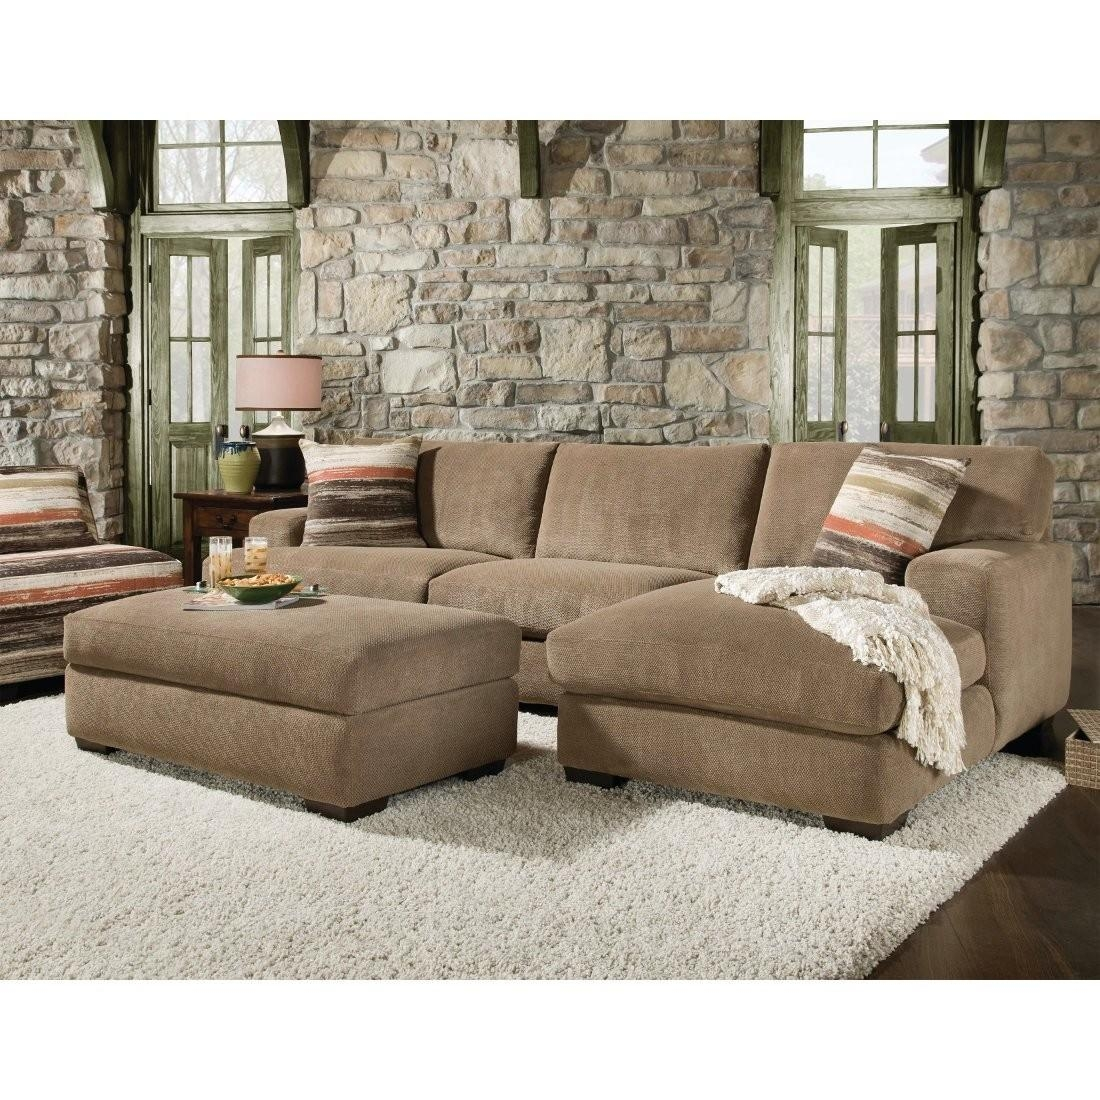 Sofas Center : Cozy Sectional Sofa With Chaise And Ottoman About Pertaining To Goose Down Sectional Sofa (View 4 of 15)